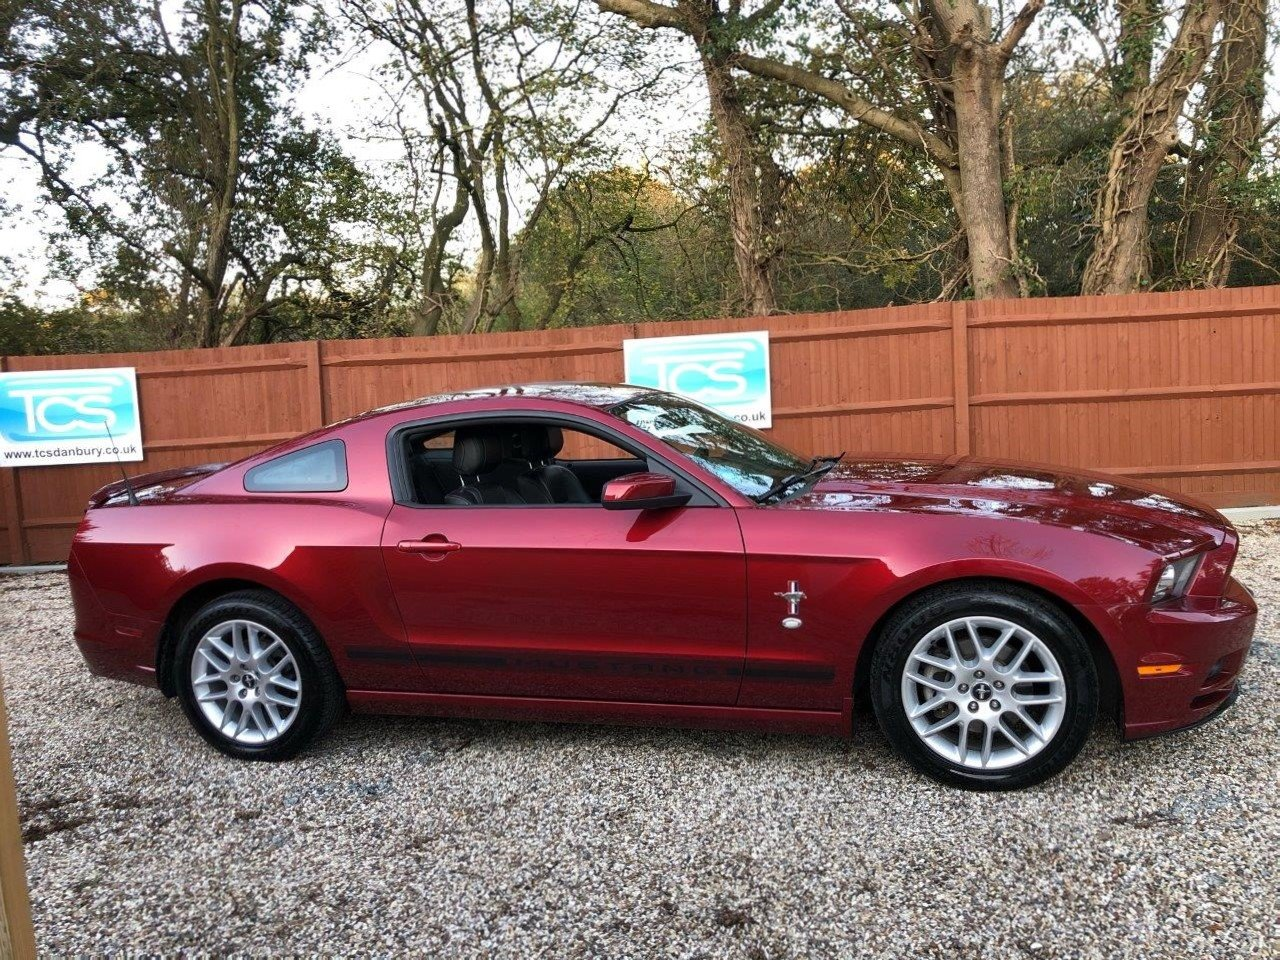 2014 15-Plate UK Registered Mustang Premium Fastback LHD Auto For Sale (picture 3 of 6)